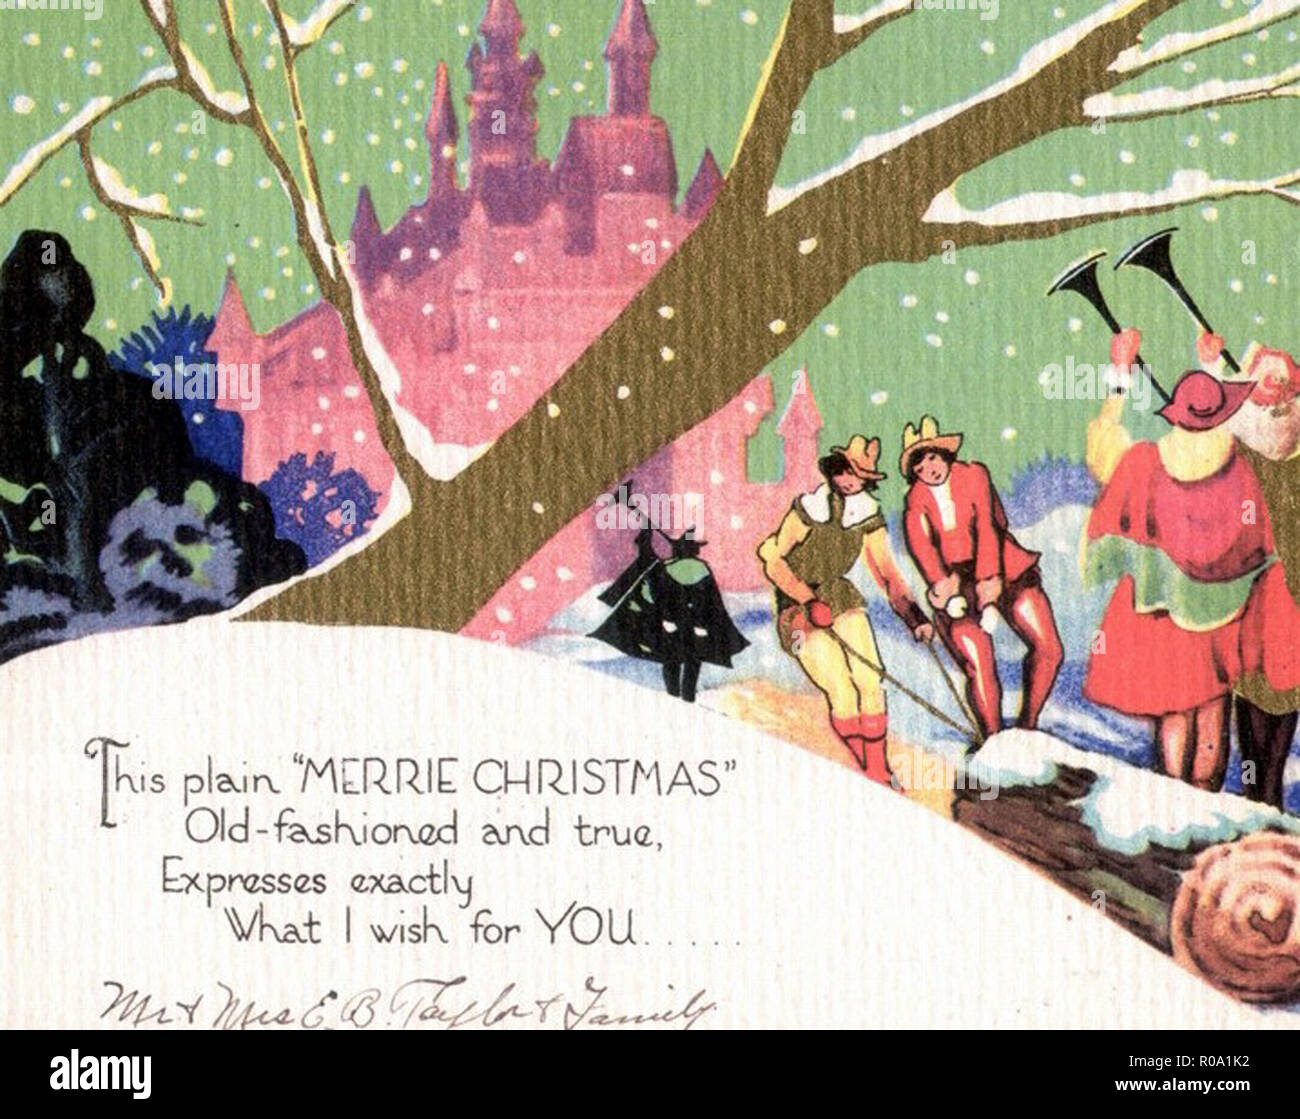 Vintage Victorian Christmas Card Design Illustration Art Stock Photo Alamy